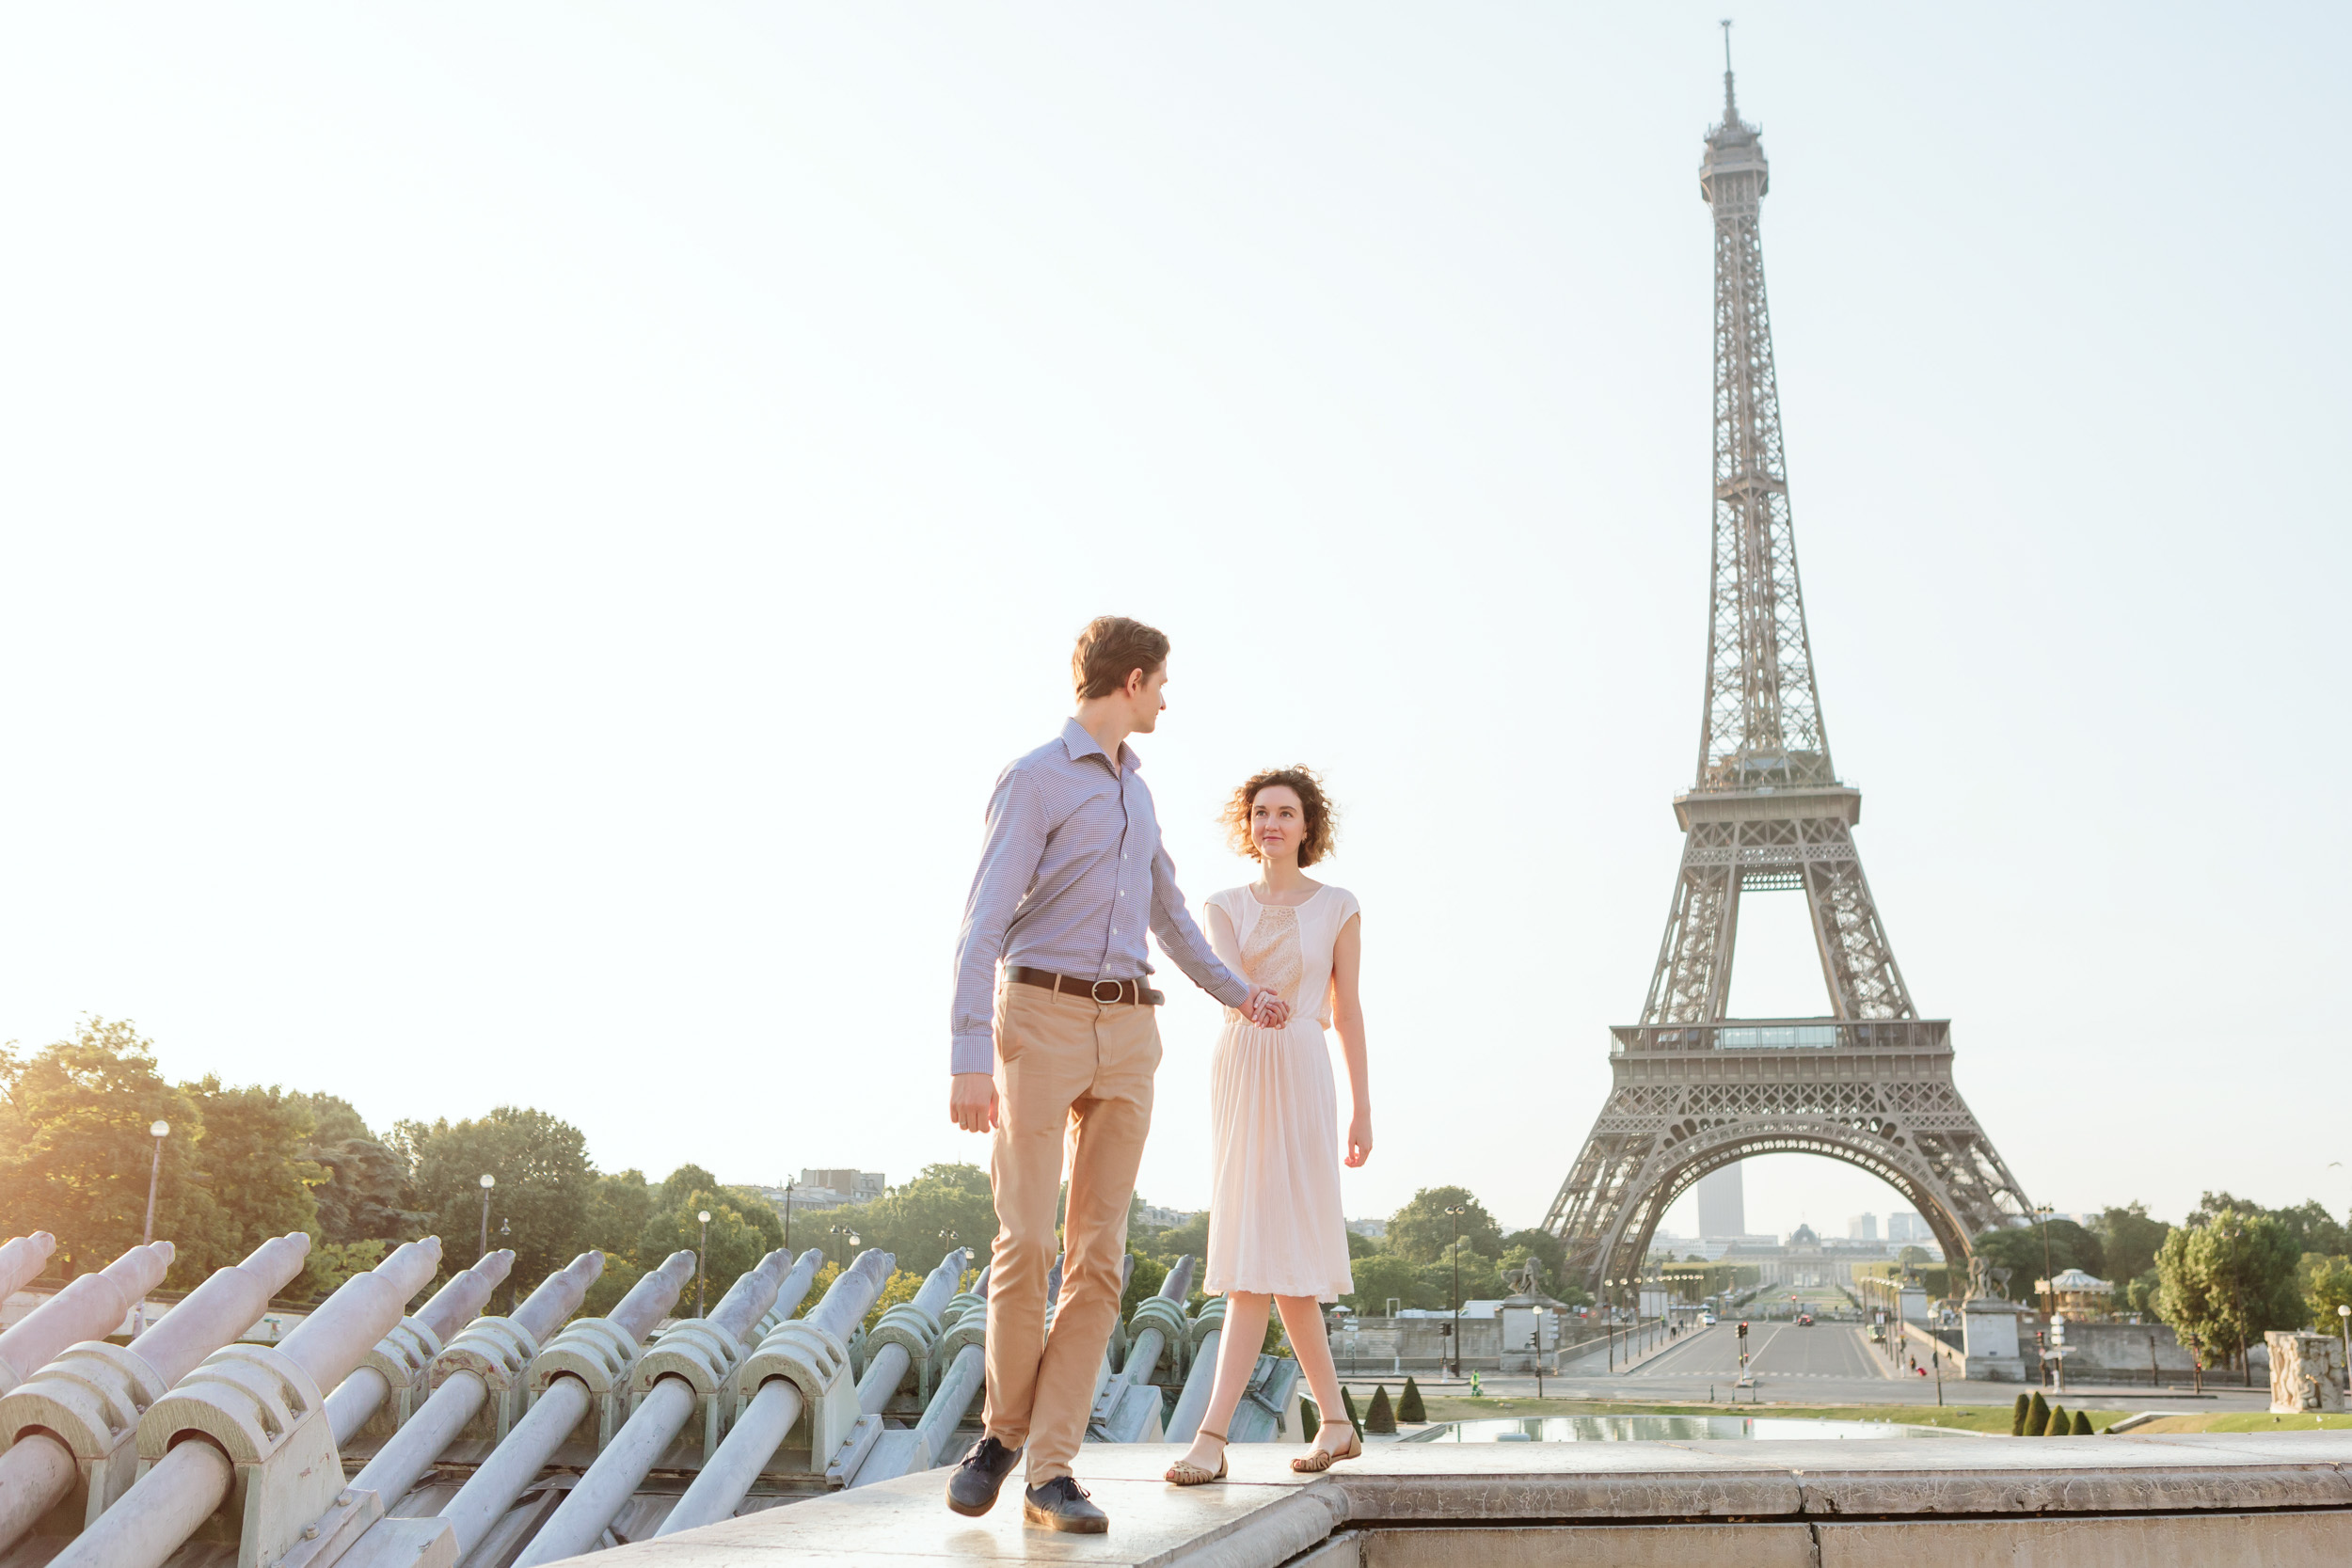 Couple in love walking at Trocadero by the Eiffel Tower captured by Paris Photographer Federico Guendel IheartParisFr